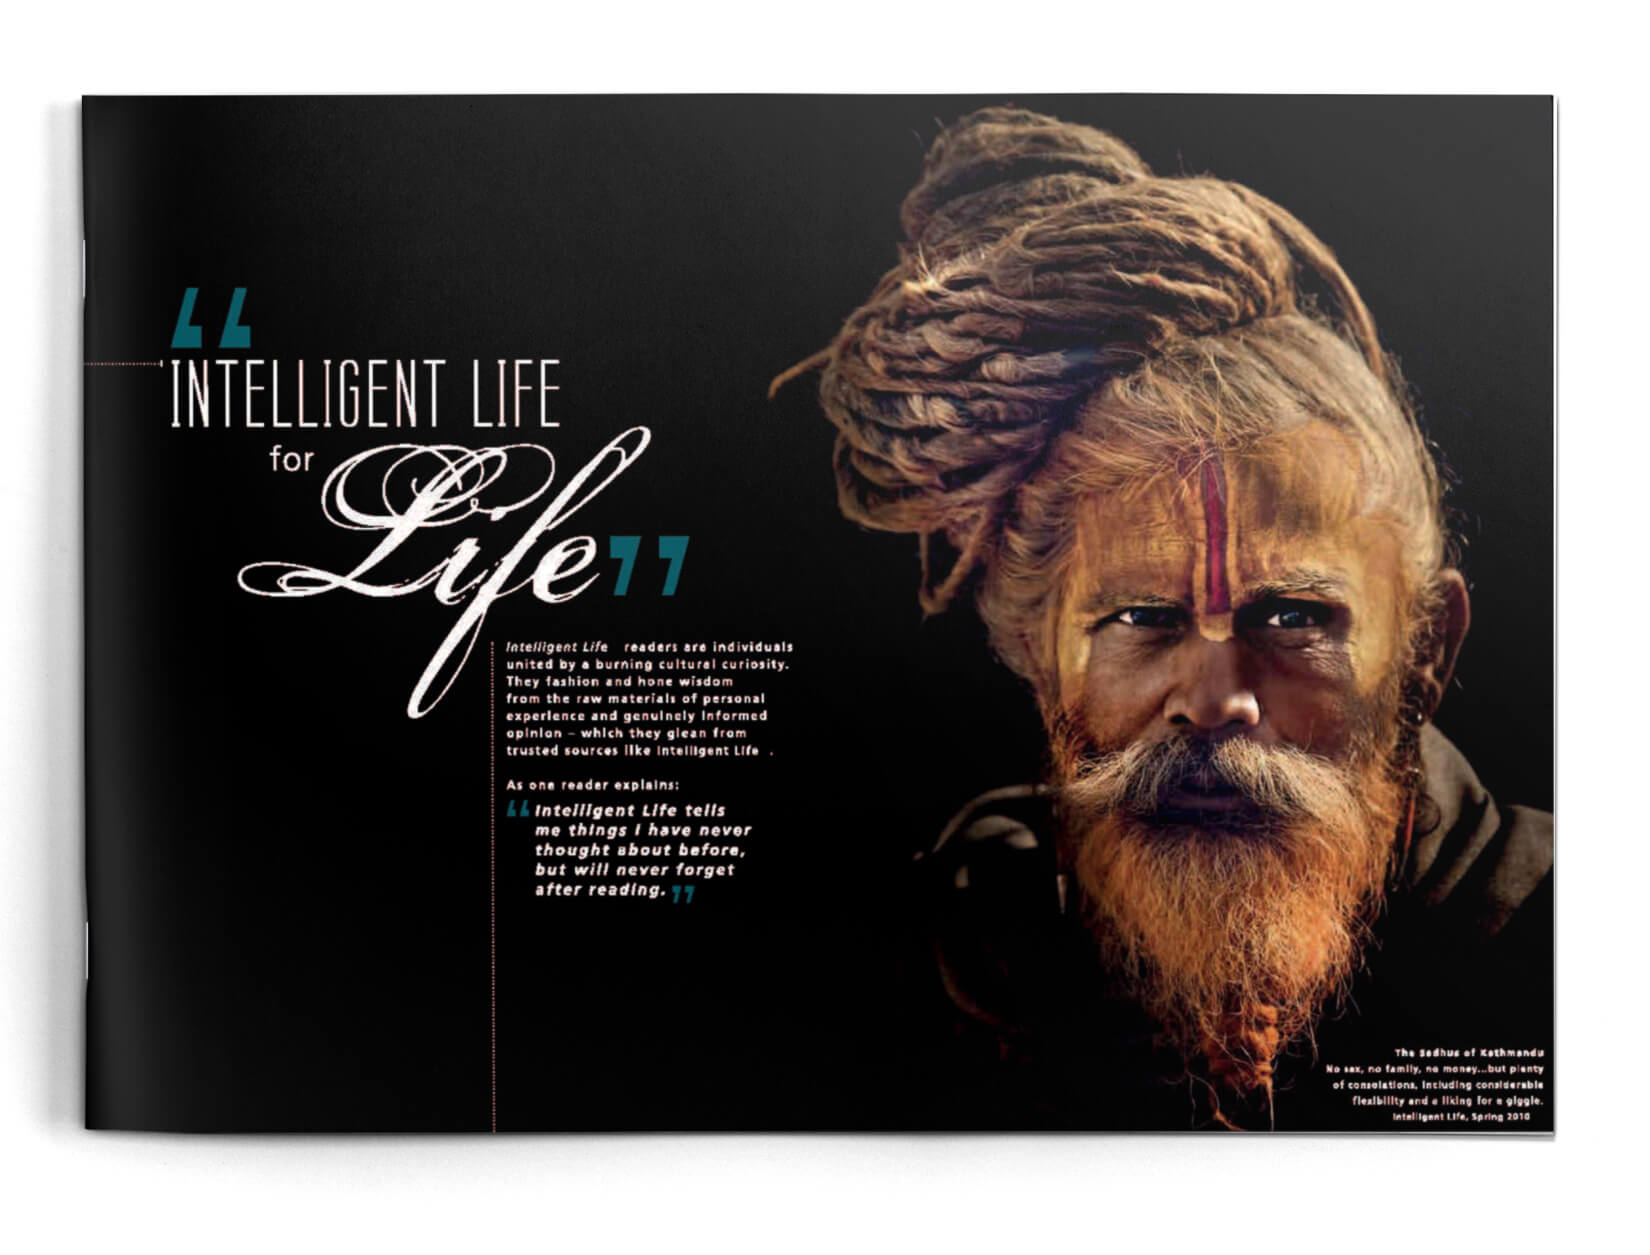 mediakit-intelligent-life-cover-6